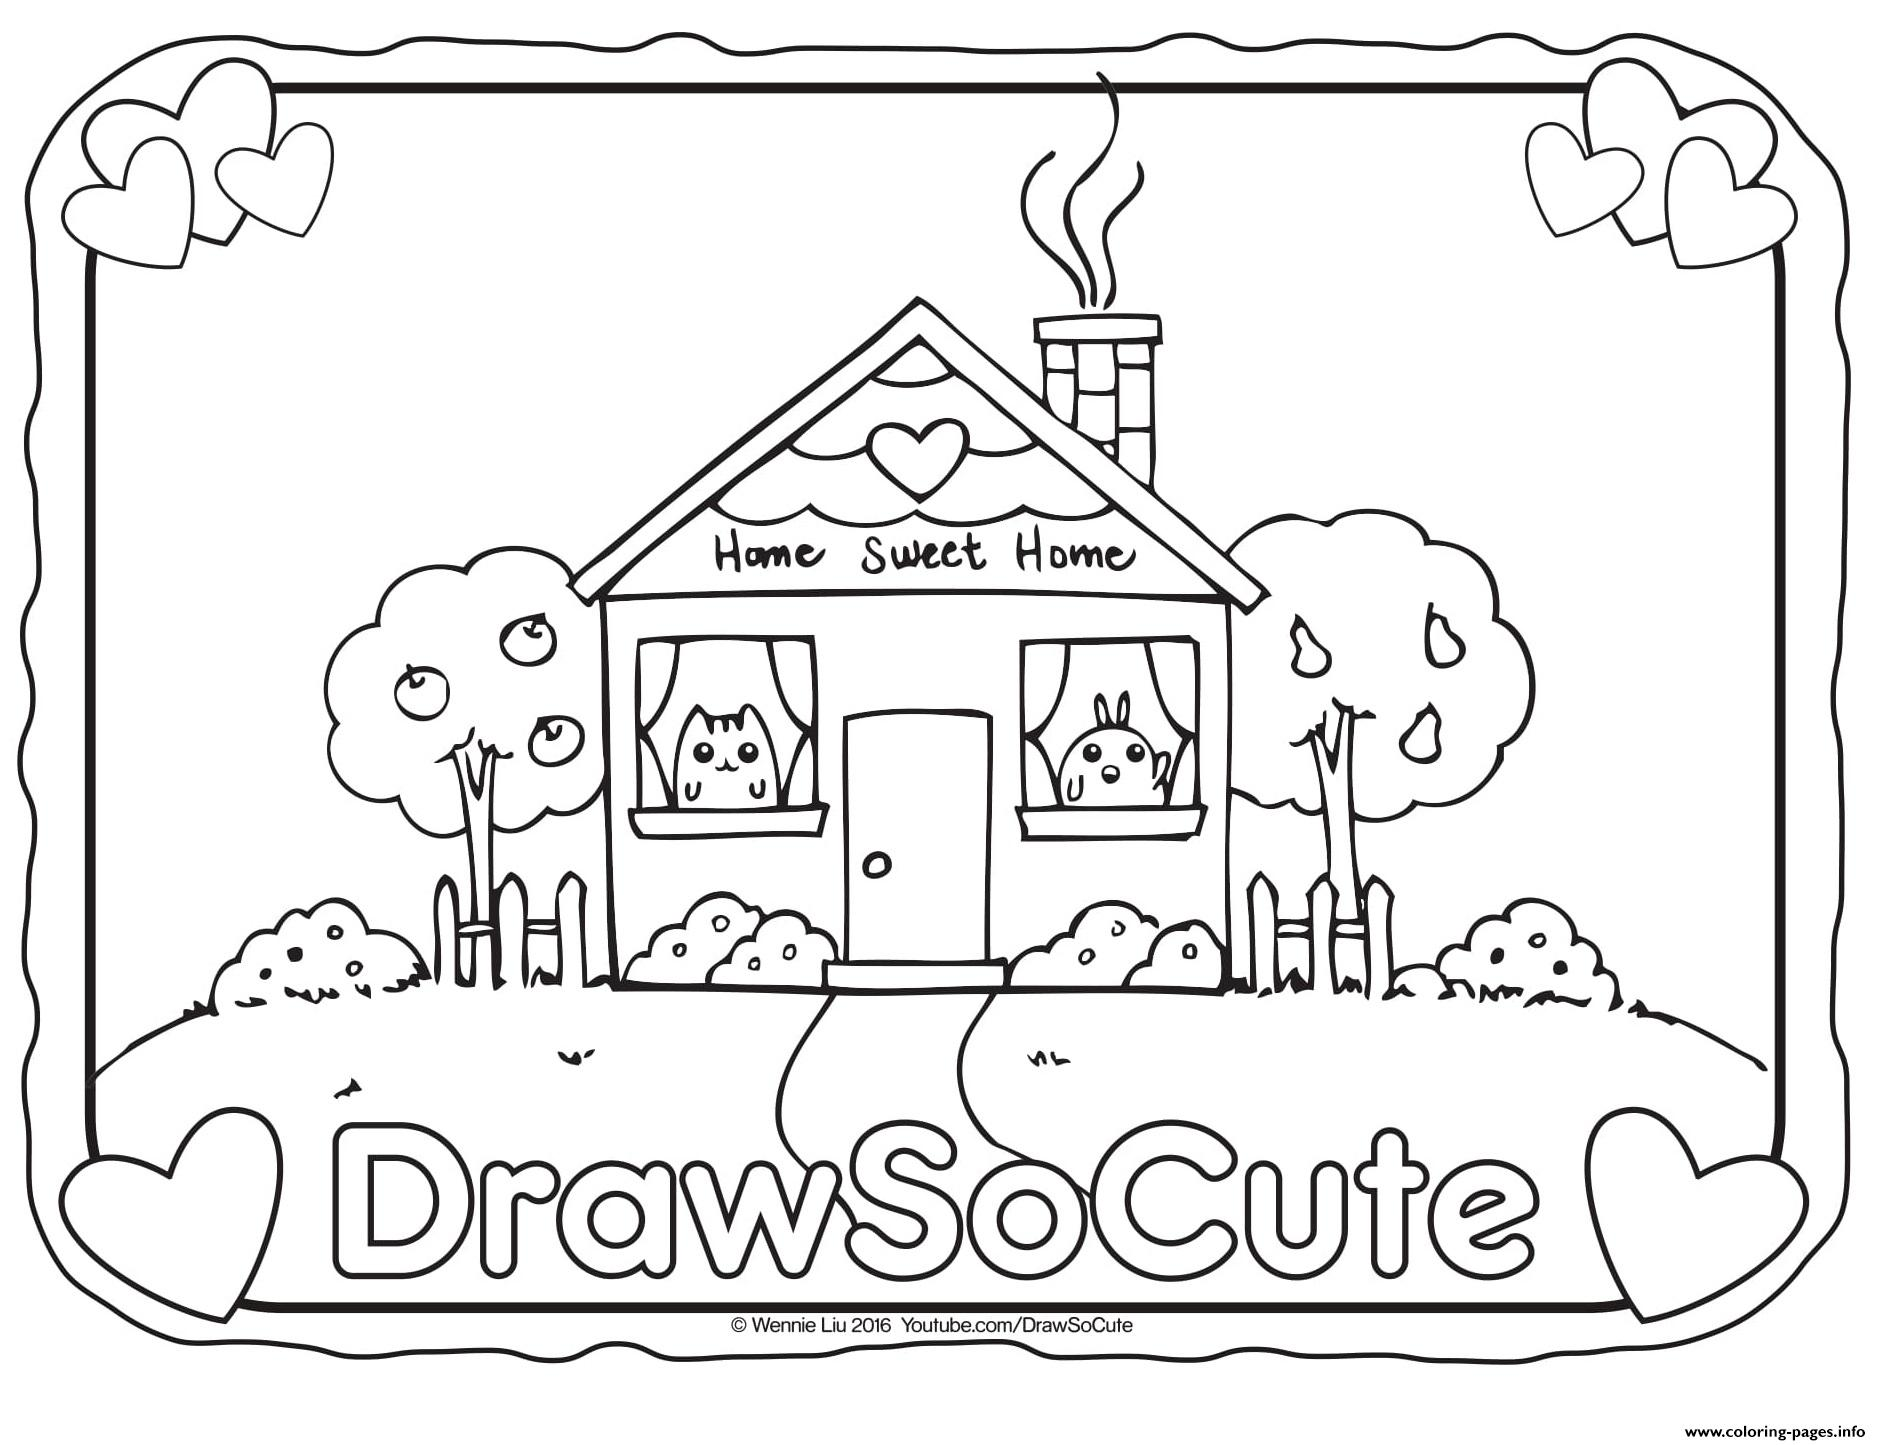 House draw so cute coloring pages printable for Draw so cute coloring pages